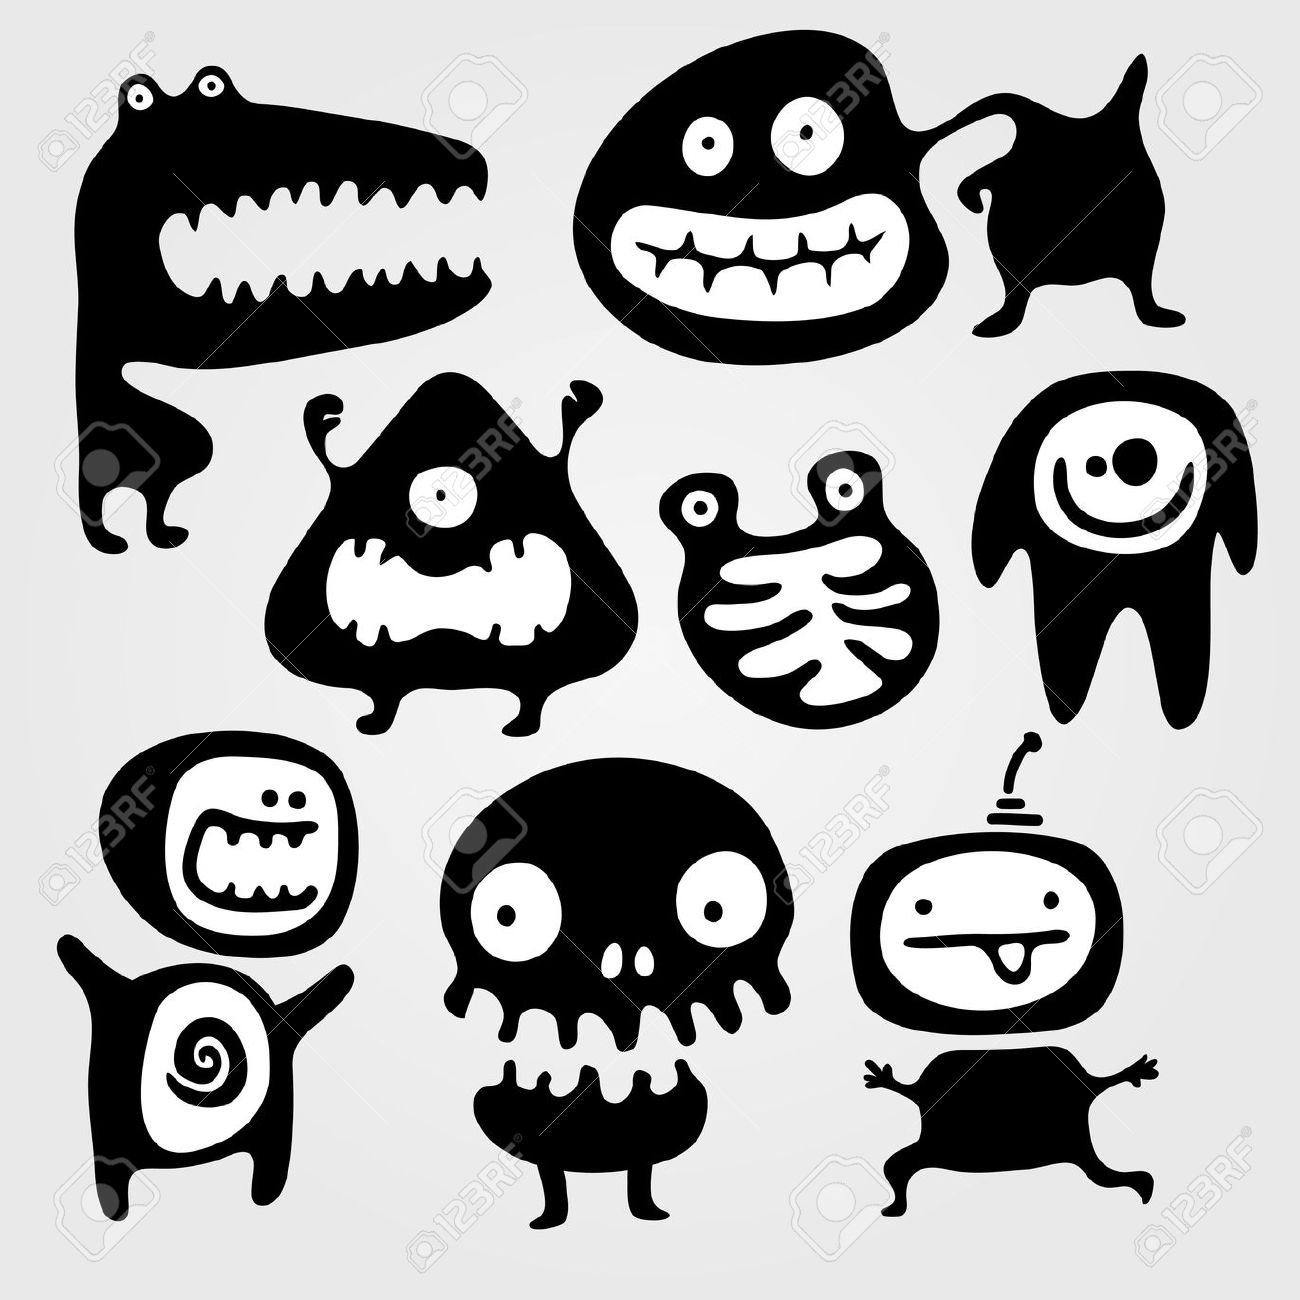 Set Of Few Monsters Silhouettes With Different Emotions Royalty.